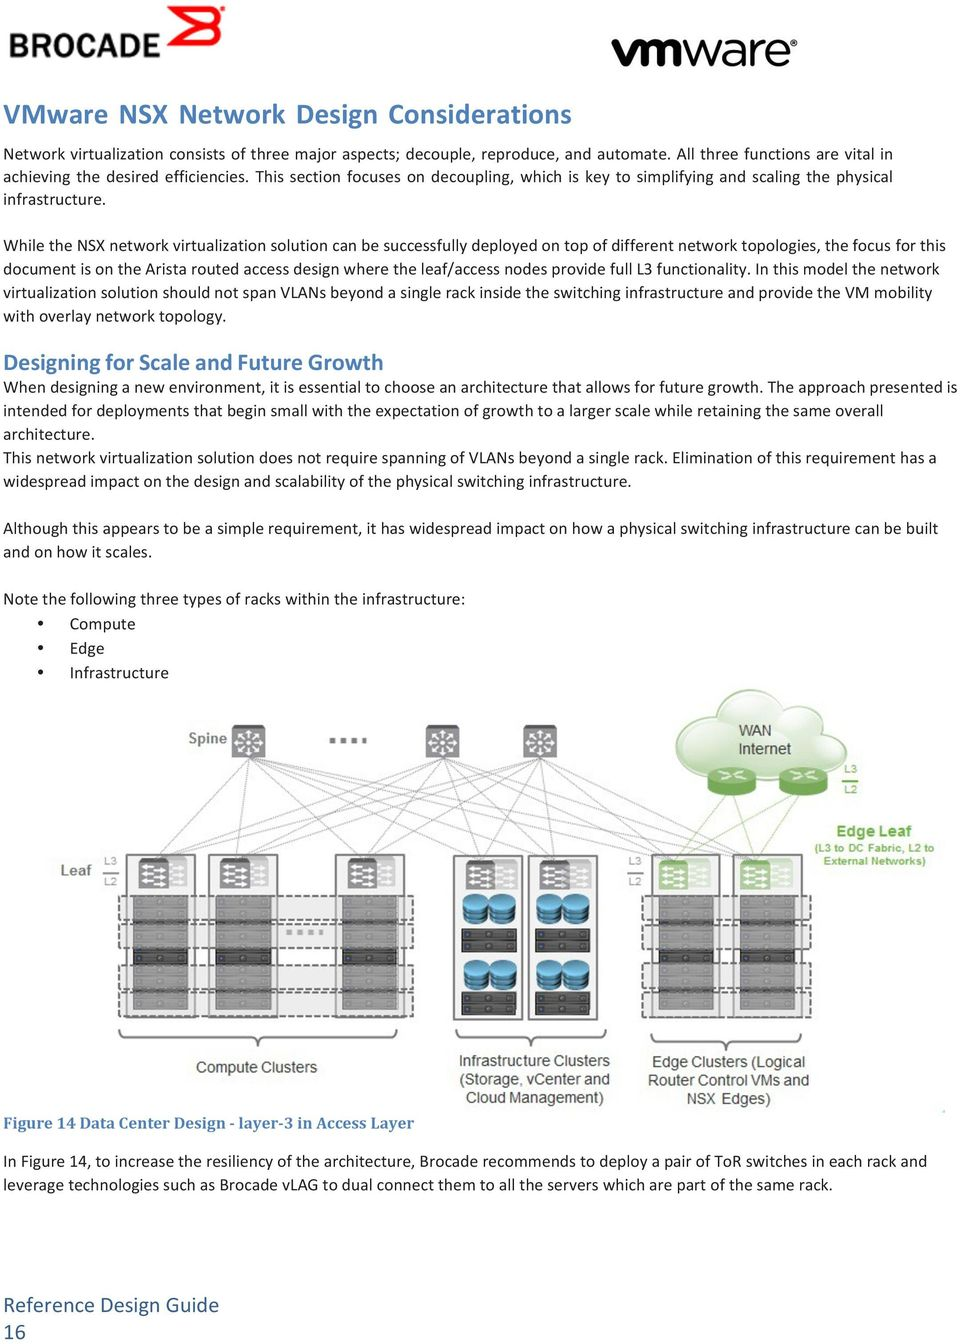 While the NSX network virtualization solution can be successfully deployed on top of different network topologies, the focus for this document is on the Arista routed access design where the